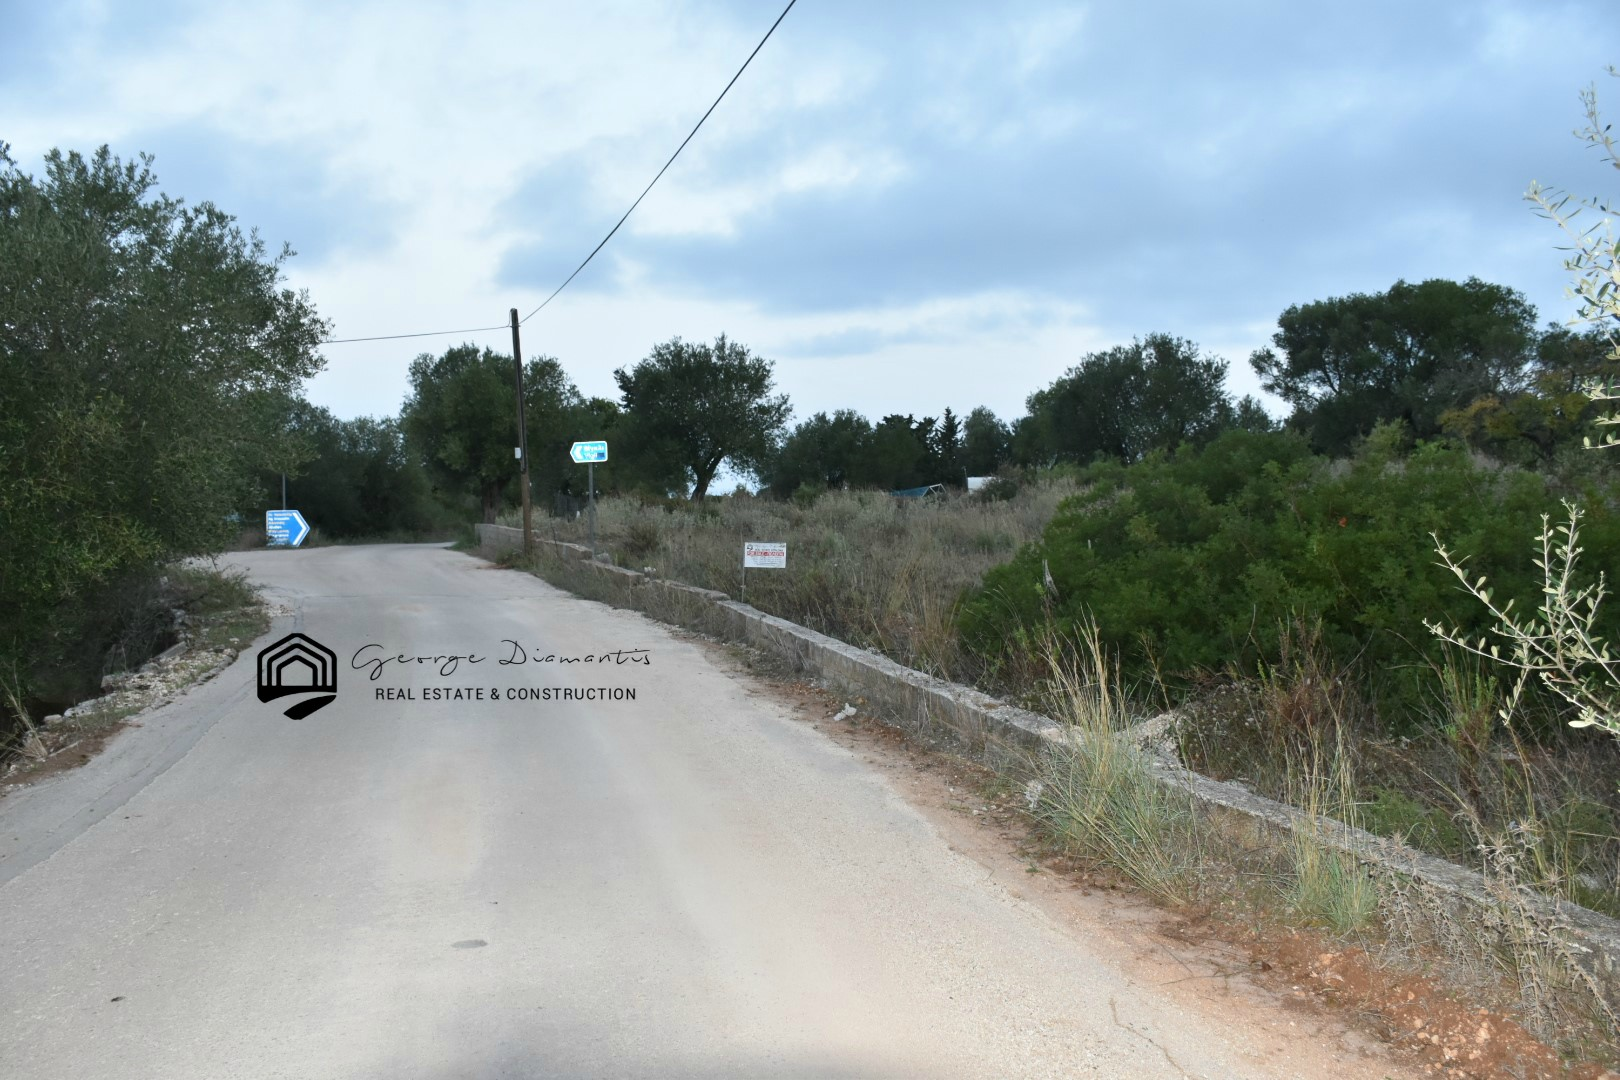 Land Plot For Sale In Markoulata Erisou